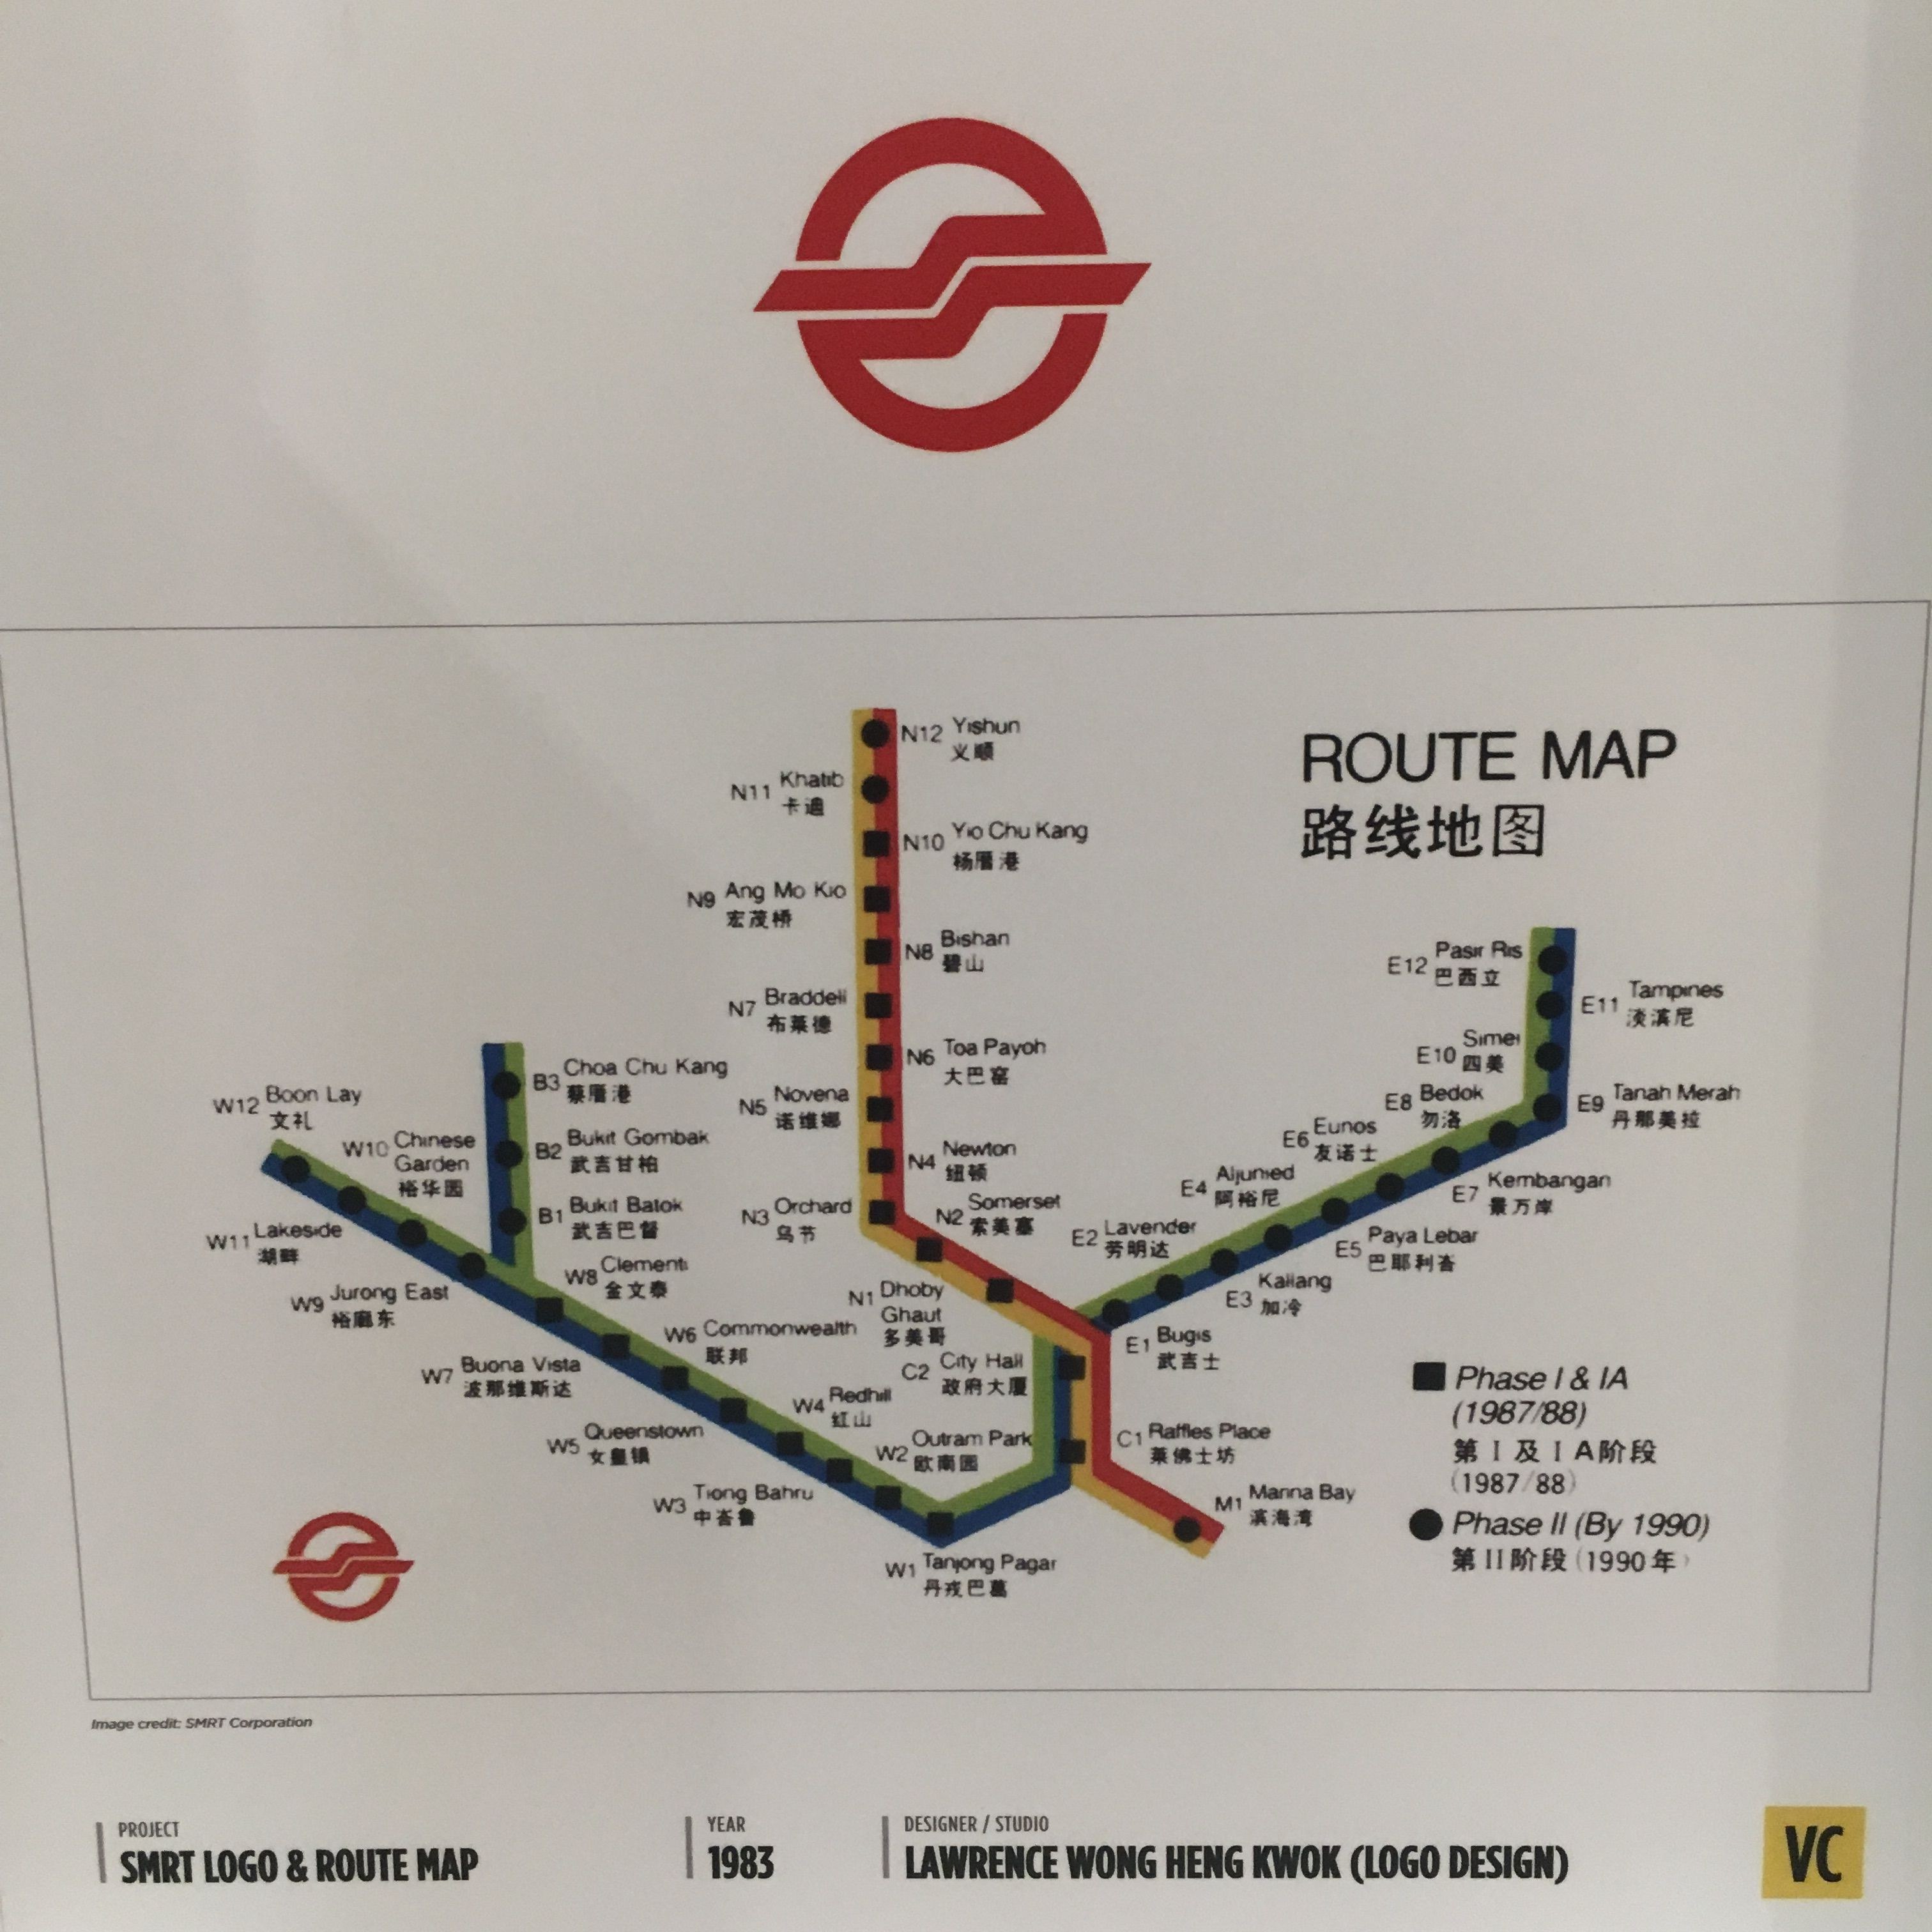 This Is Significant In Singapores Design History Because This Is - Singapore map 1990